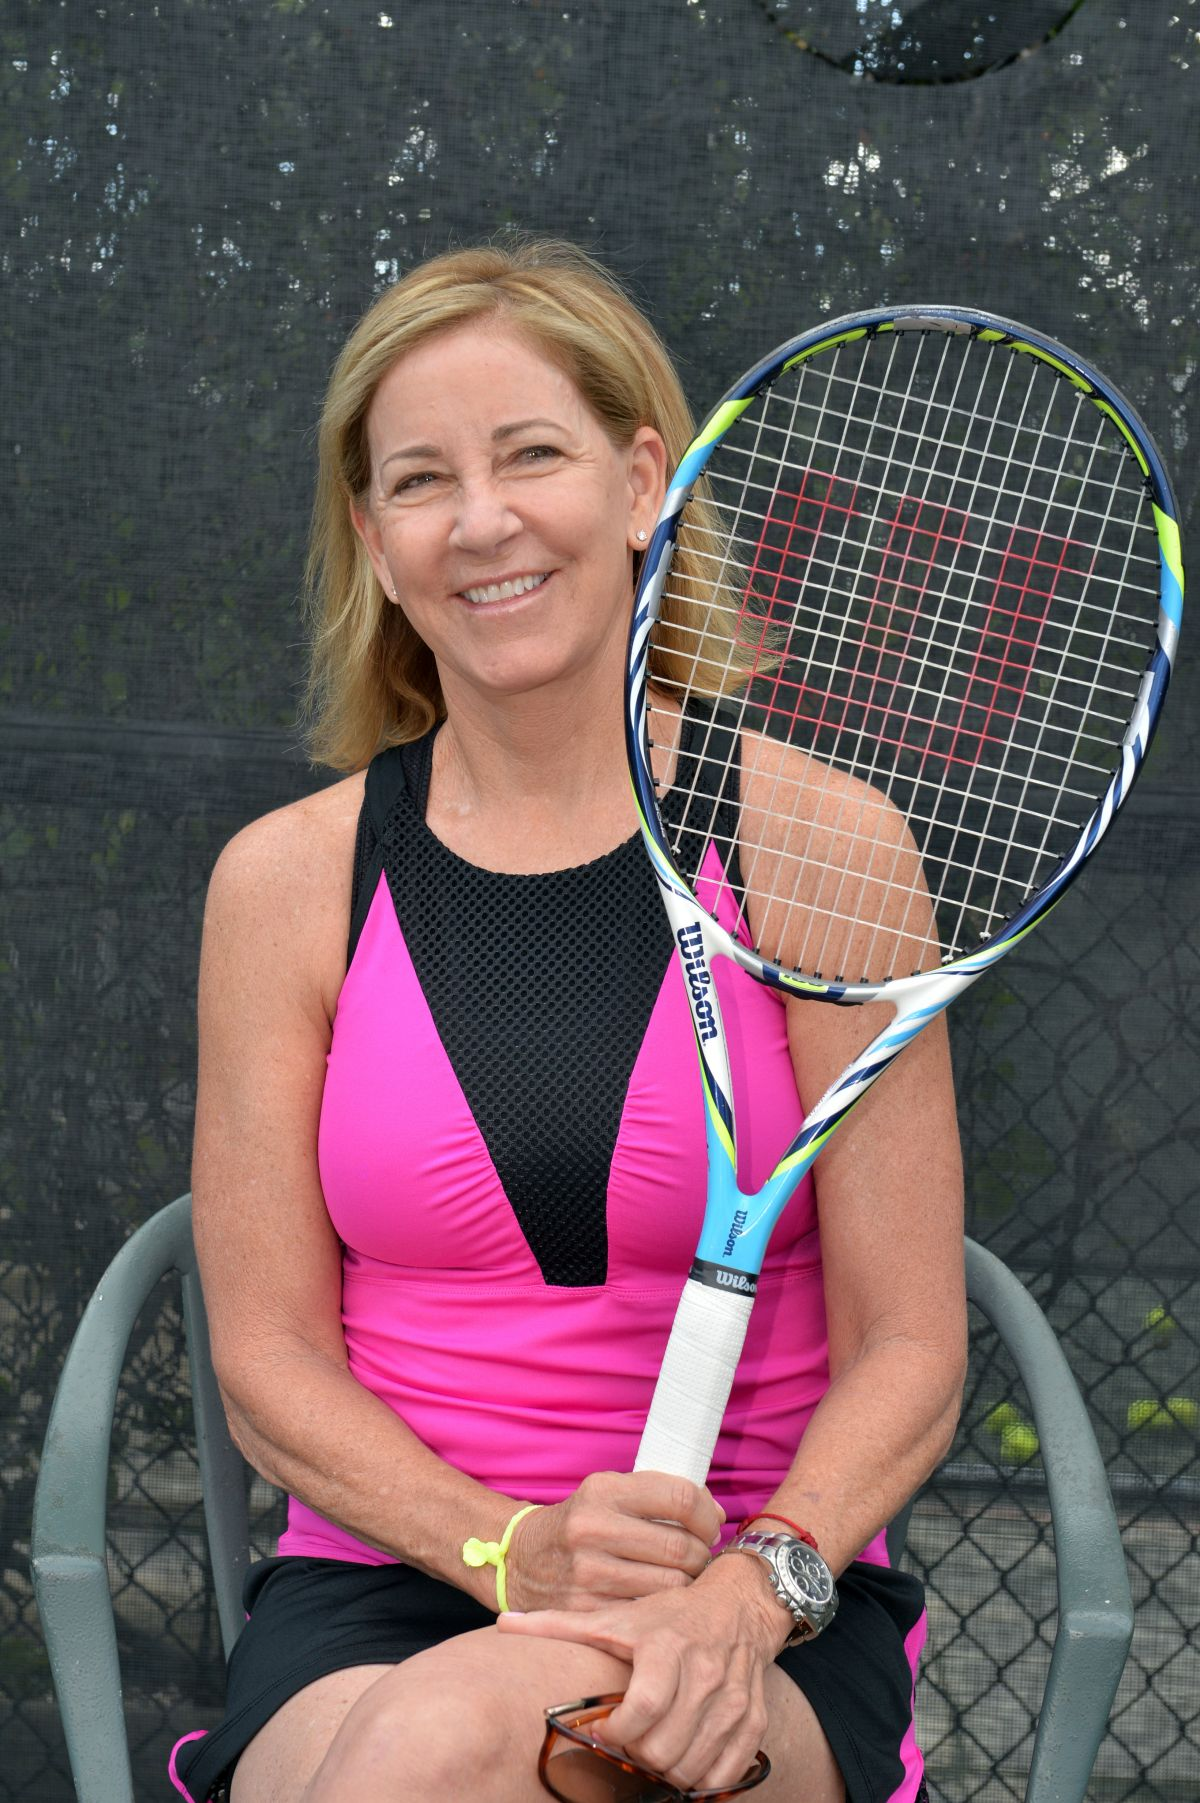 CHRIS EVERT at 27th Annual Chris Evert Raymond James Pro celebrity